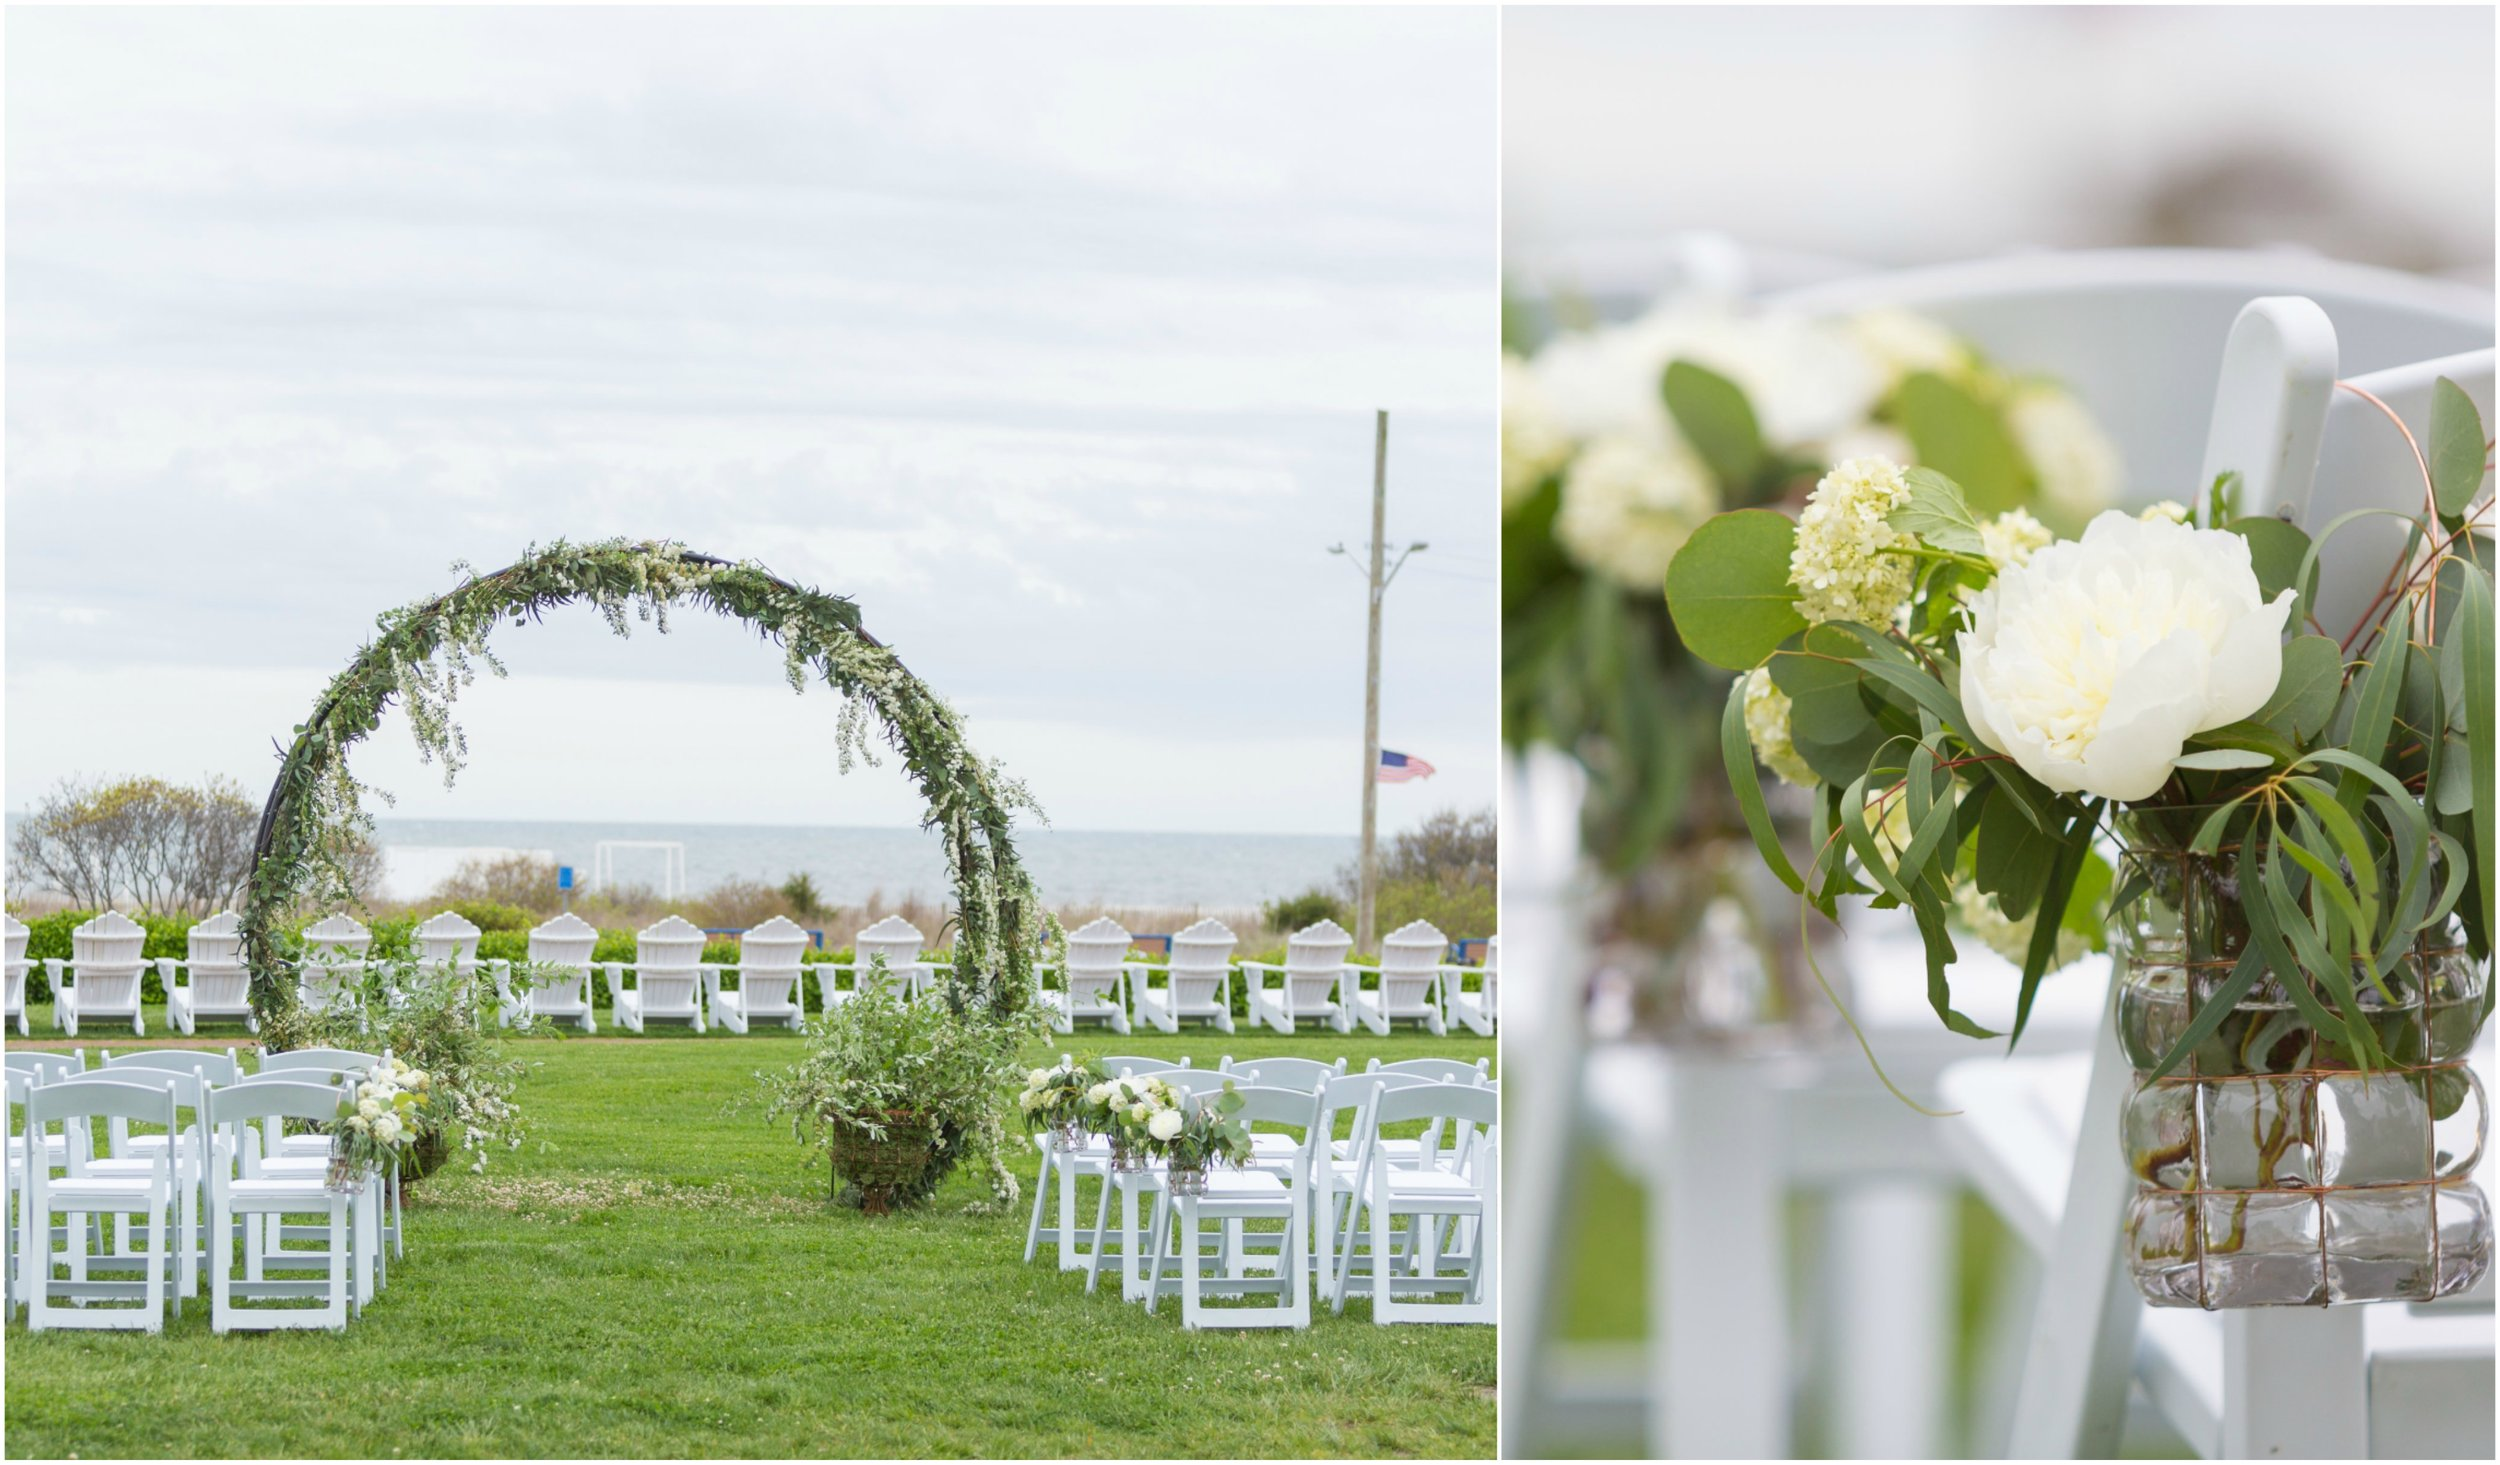 Ceremony details by A Garden Party florist for Congress Hall photo shoot